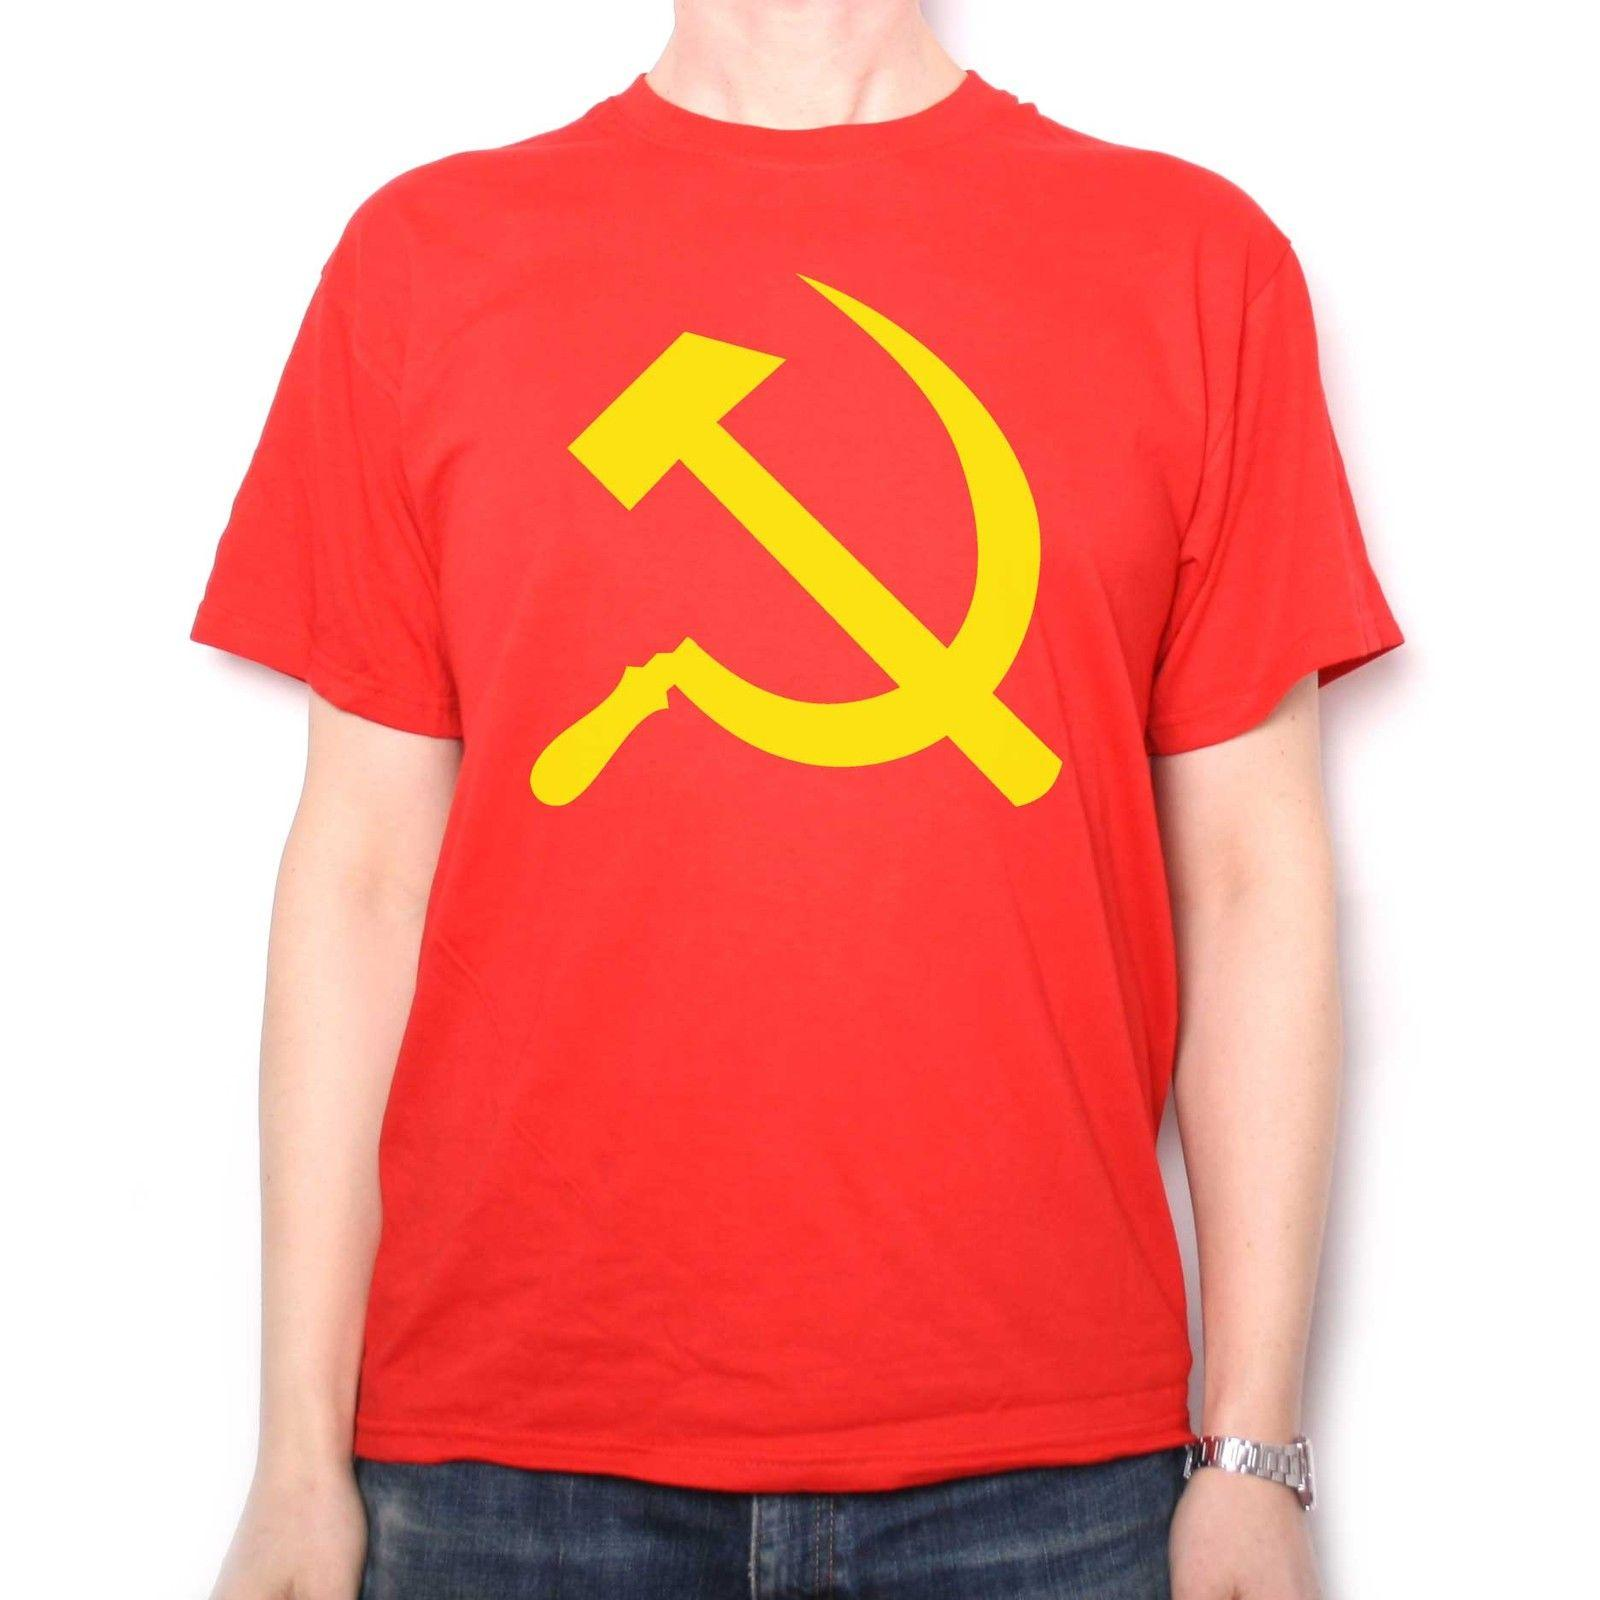 Hammer & Sickle T Shirt - Communist Flag Russion Communism Anti Capitalism?Funny free shipping Unisex